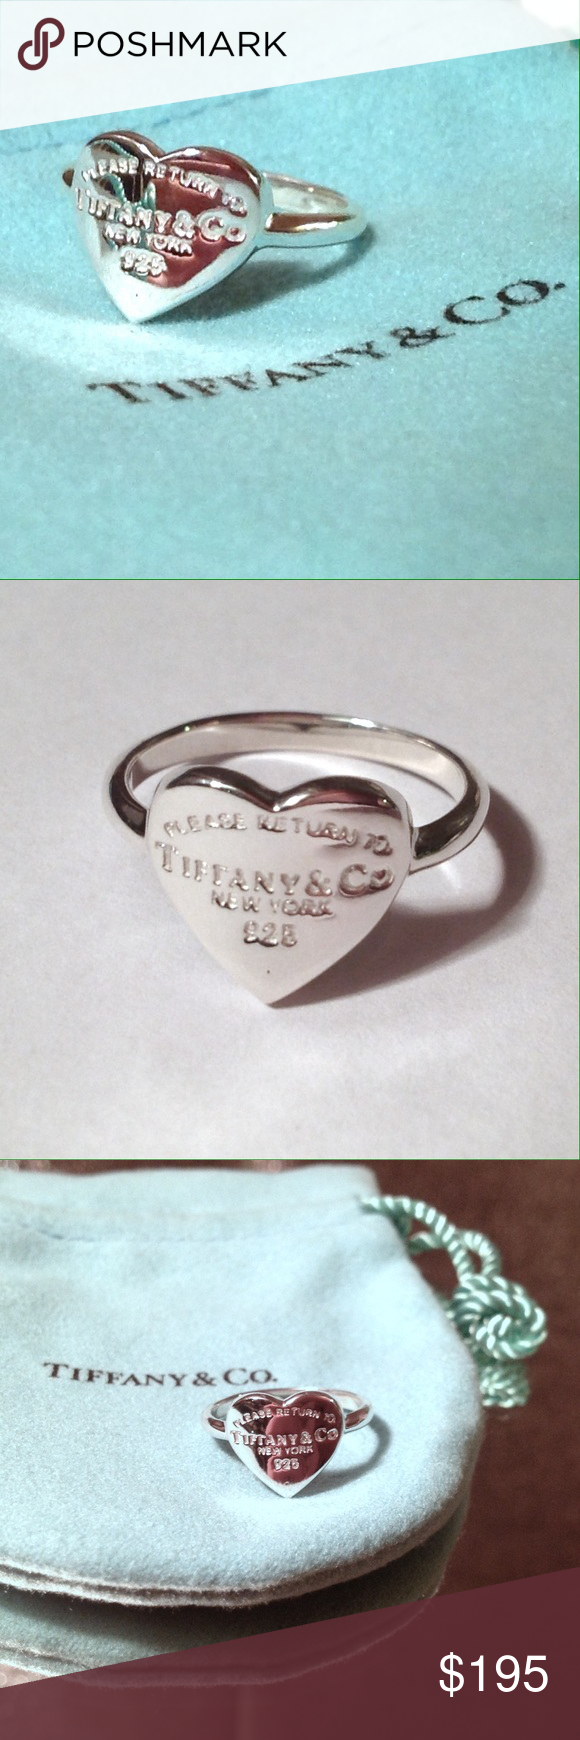 Tiffany 60% OFF! Tiffany & Co. Heart Ring Return to Tiffany NEW Tiffany & Co - Heart Ring - Return to Tiffany's. New Sterling Silver 925 Tiffany & Co. ring. Heart shape with IF FOUND PLEASE RETURN TO TIFFANY & CO. NEW YORK engraved on the front. Tiffany & Co. jewelry pouch included. New - never worn. Love this style for #valentinesday it's a classic and no longer available through their website. Tiffany & Co. Jewelry Rings #Jewelry #Tiffany #style #Accessories #shopping #styles #outfit...